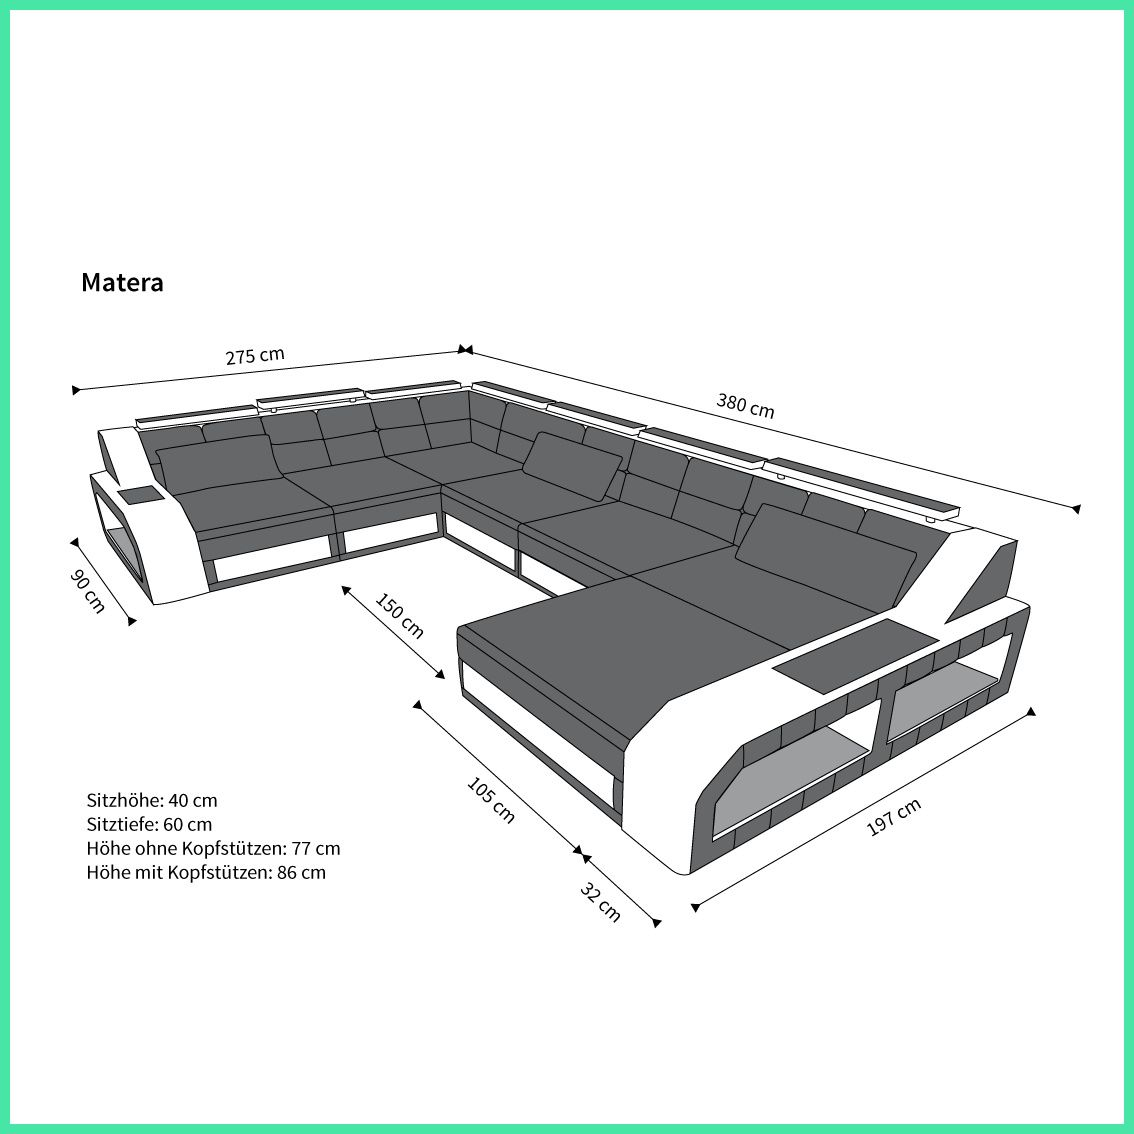 12 Regelmassig U Form Ledersofa In 2020 Cool Couches Comfortable Couch Types Of Couches